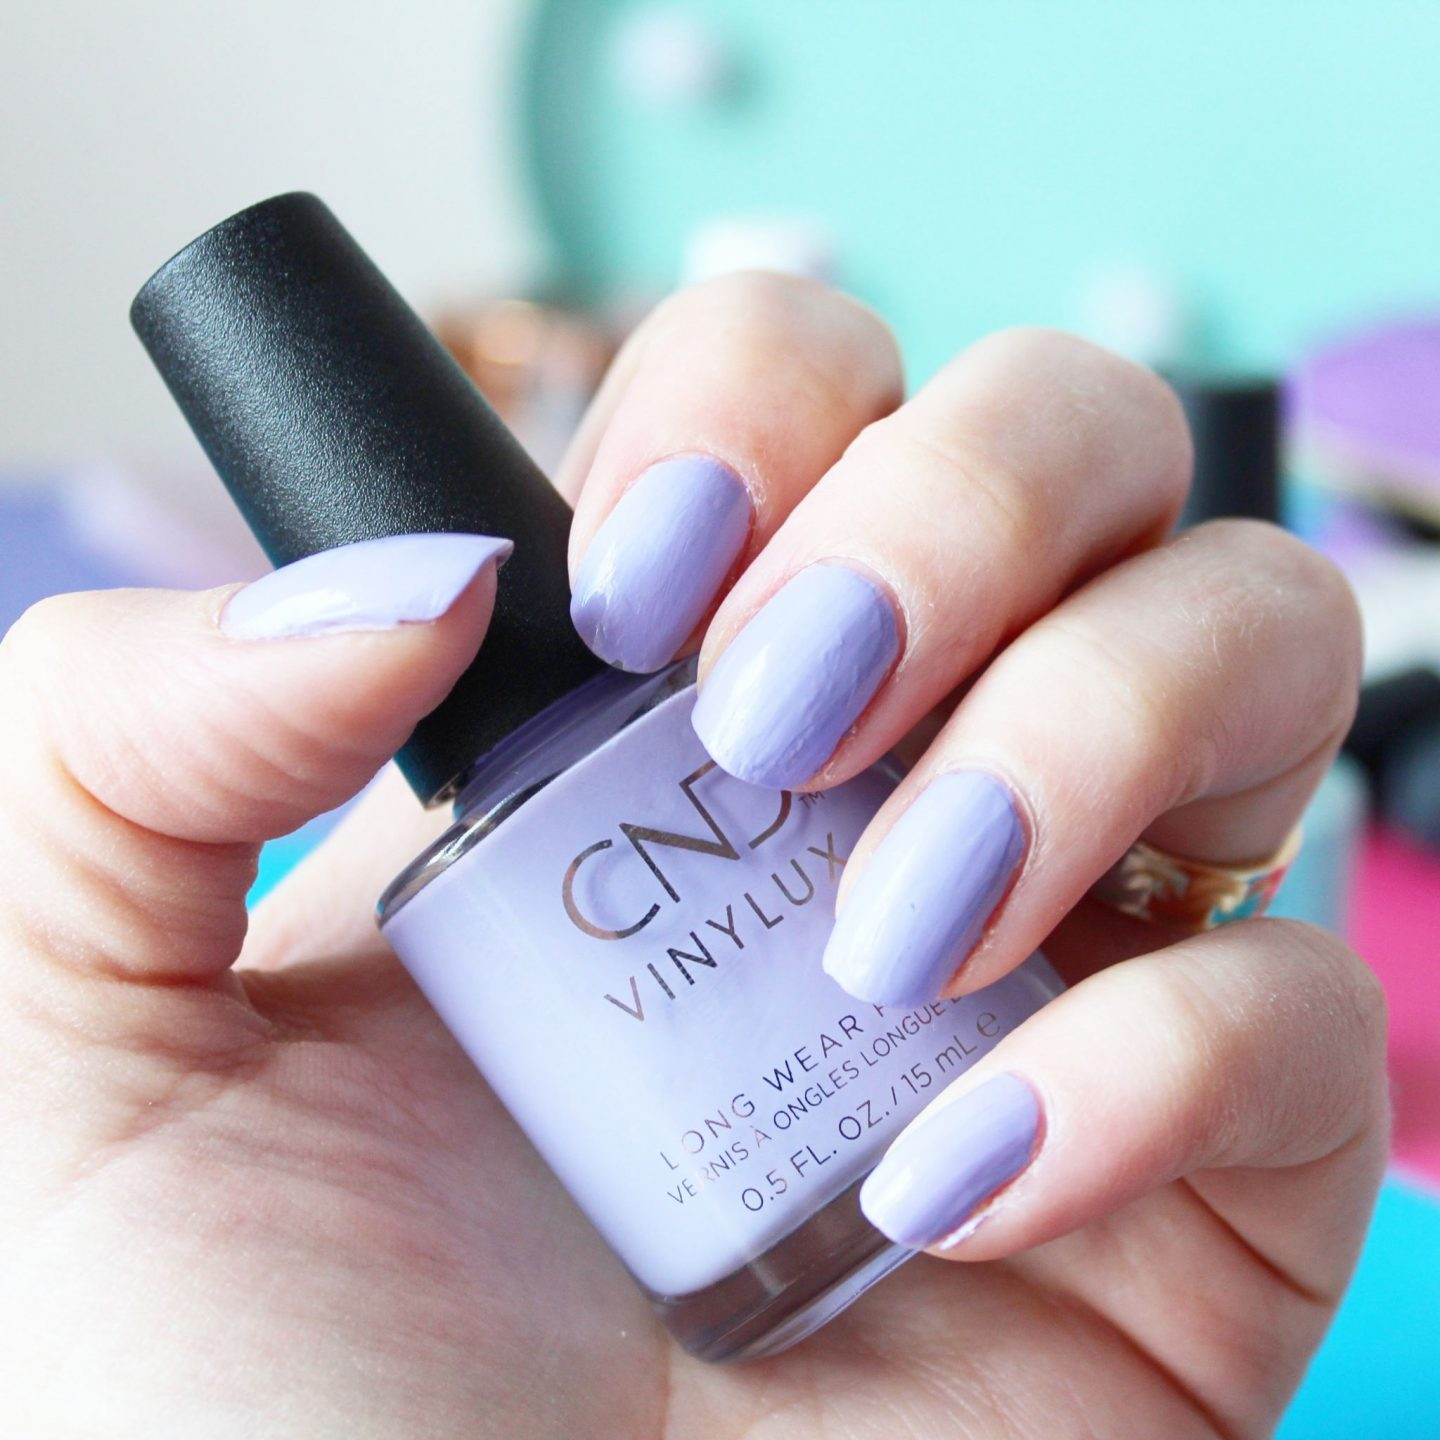 CND Vinylux Long Wear Polish | Chic Shock Collection (Gummi)